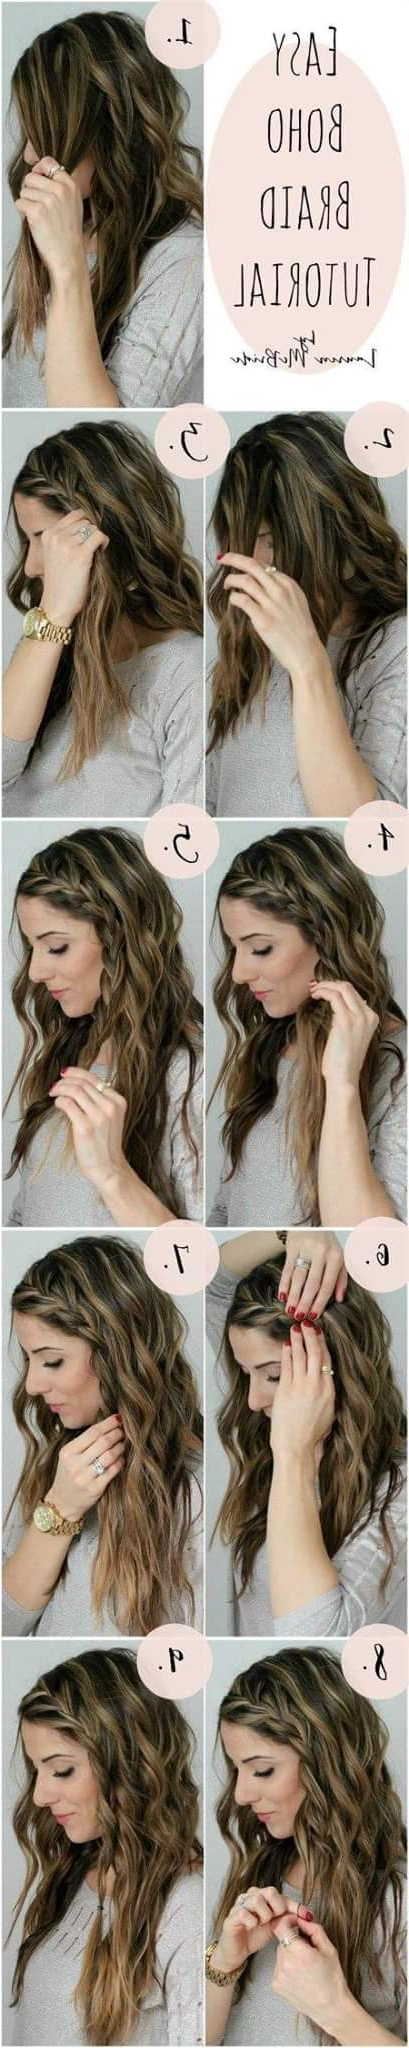 Well Known Chic Bohemian Braid Hairstyles Throughout 55+ Trendy Head Turning Boho (bohemian) Hairstyles For All (View 7 of 20)